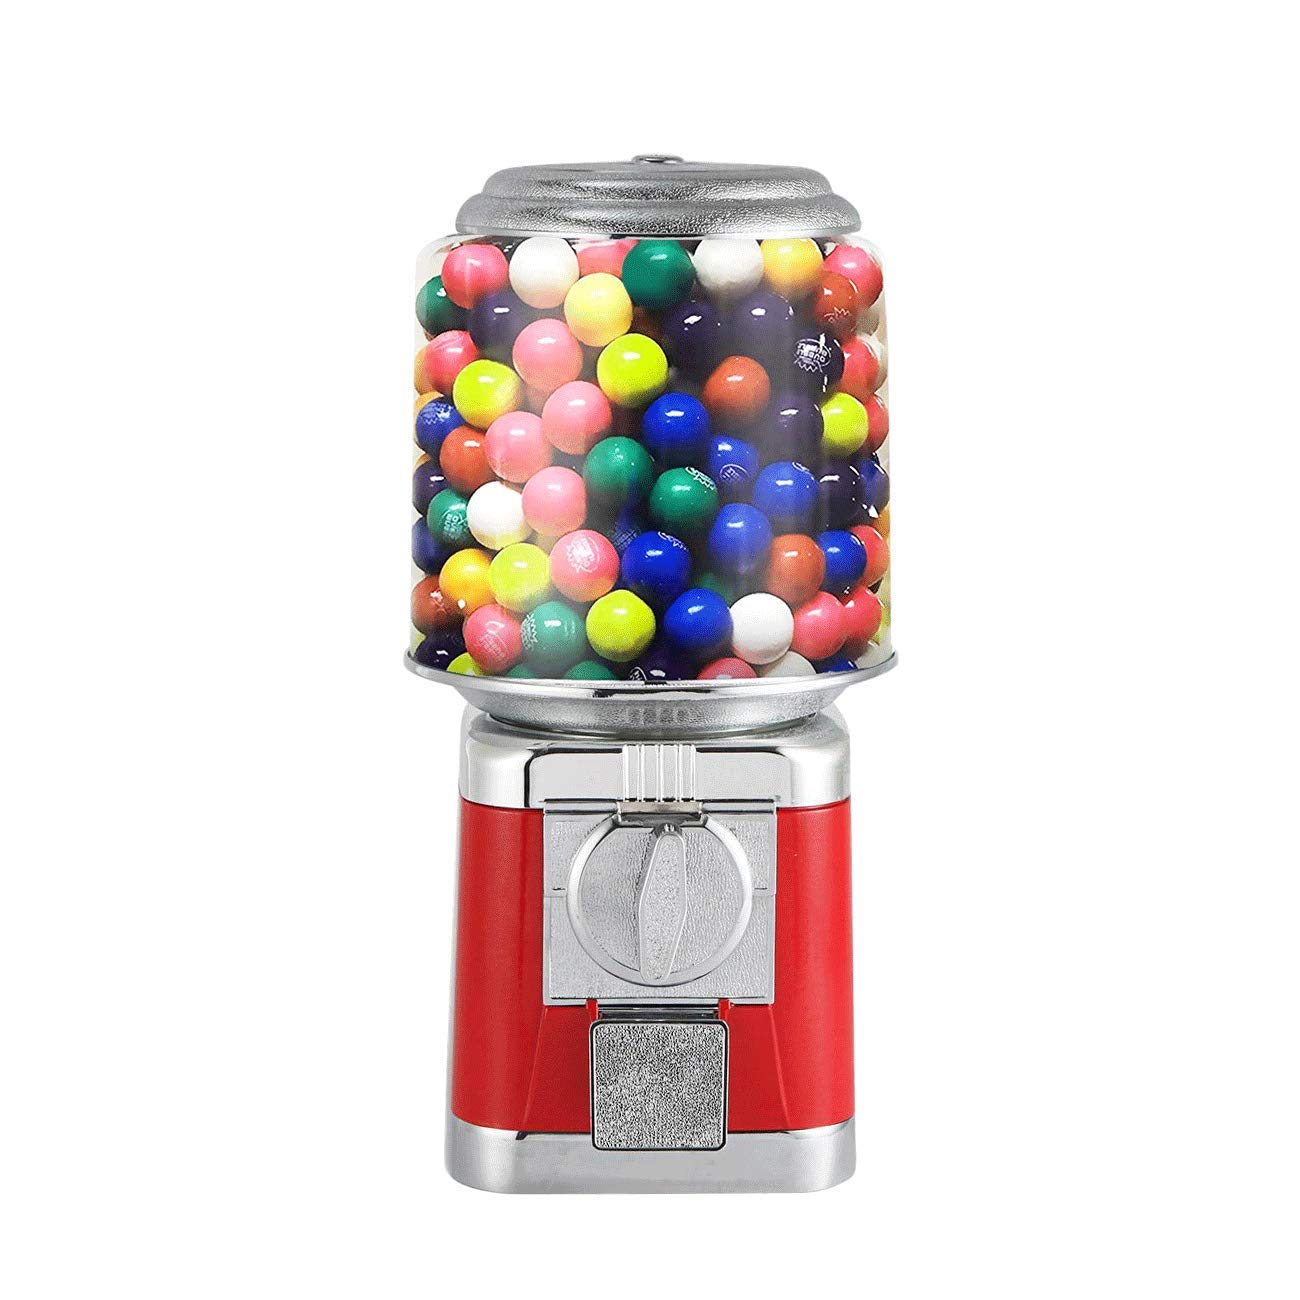 IRONWALLS Gumball Candy Vending Machine, Capsule Bouncy Ball Gumball Commercial Dispenser Machine with Key Lock for 25-32mm Candy, Durable, Removable Metal Body, Red